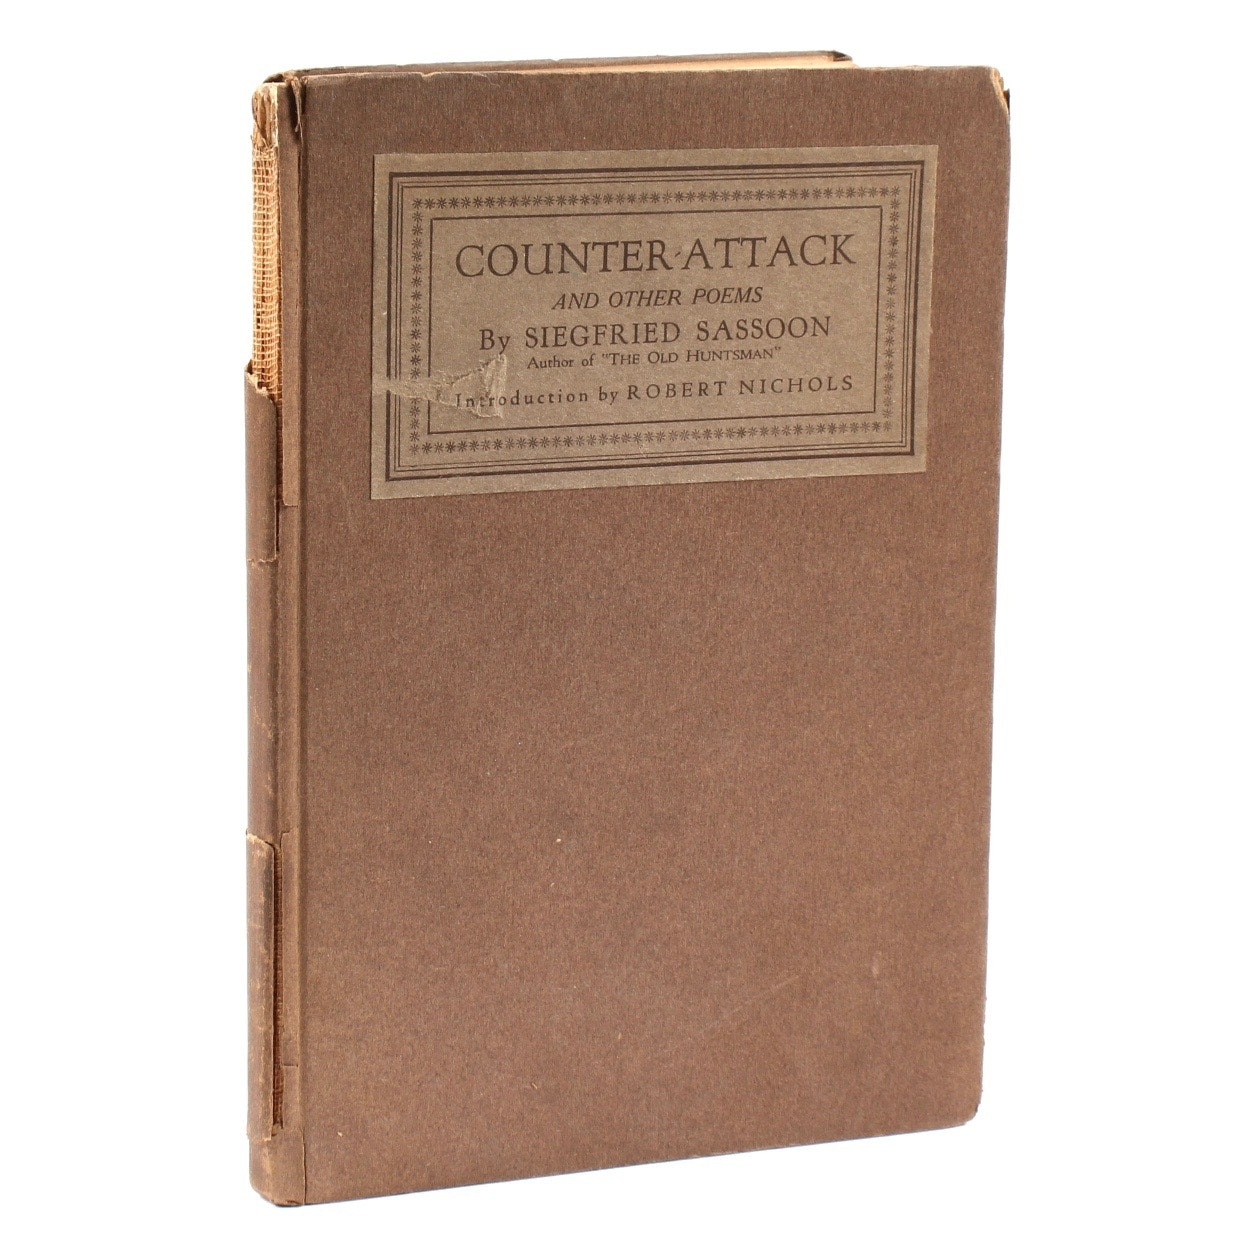 Counter-Attack and Other Poems